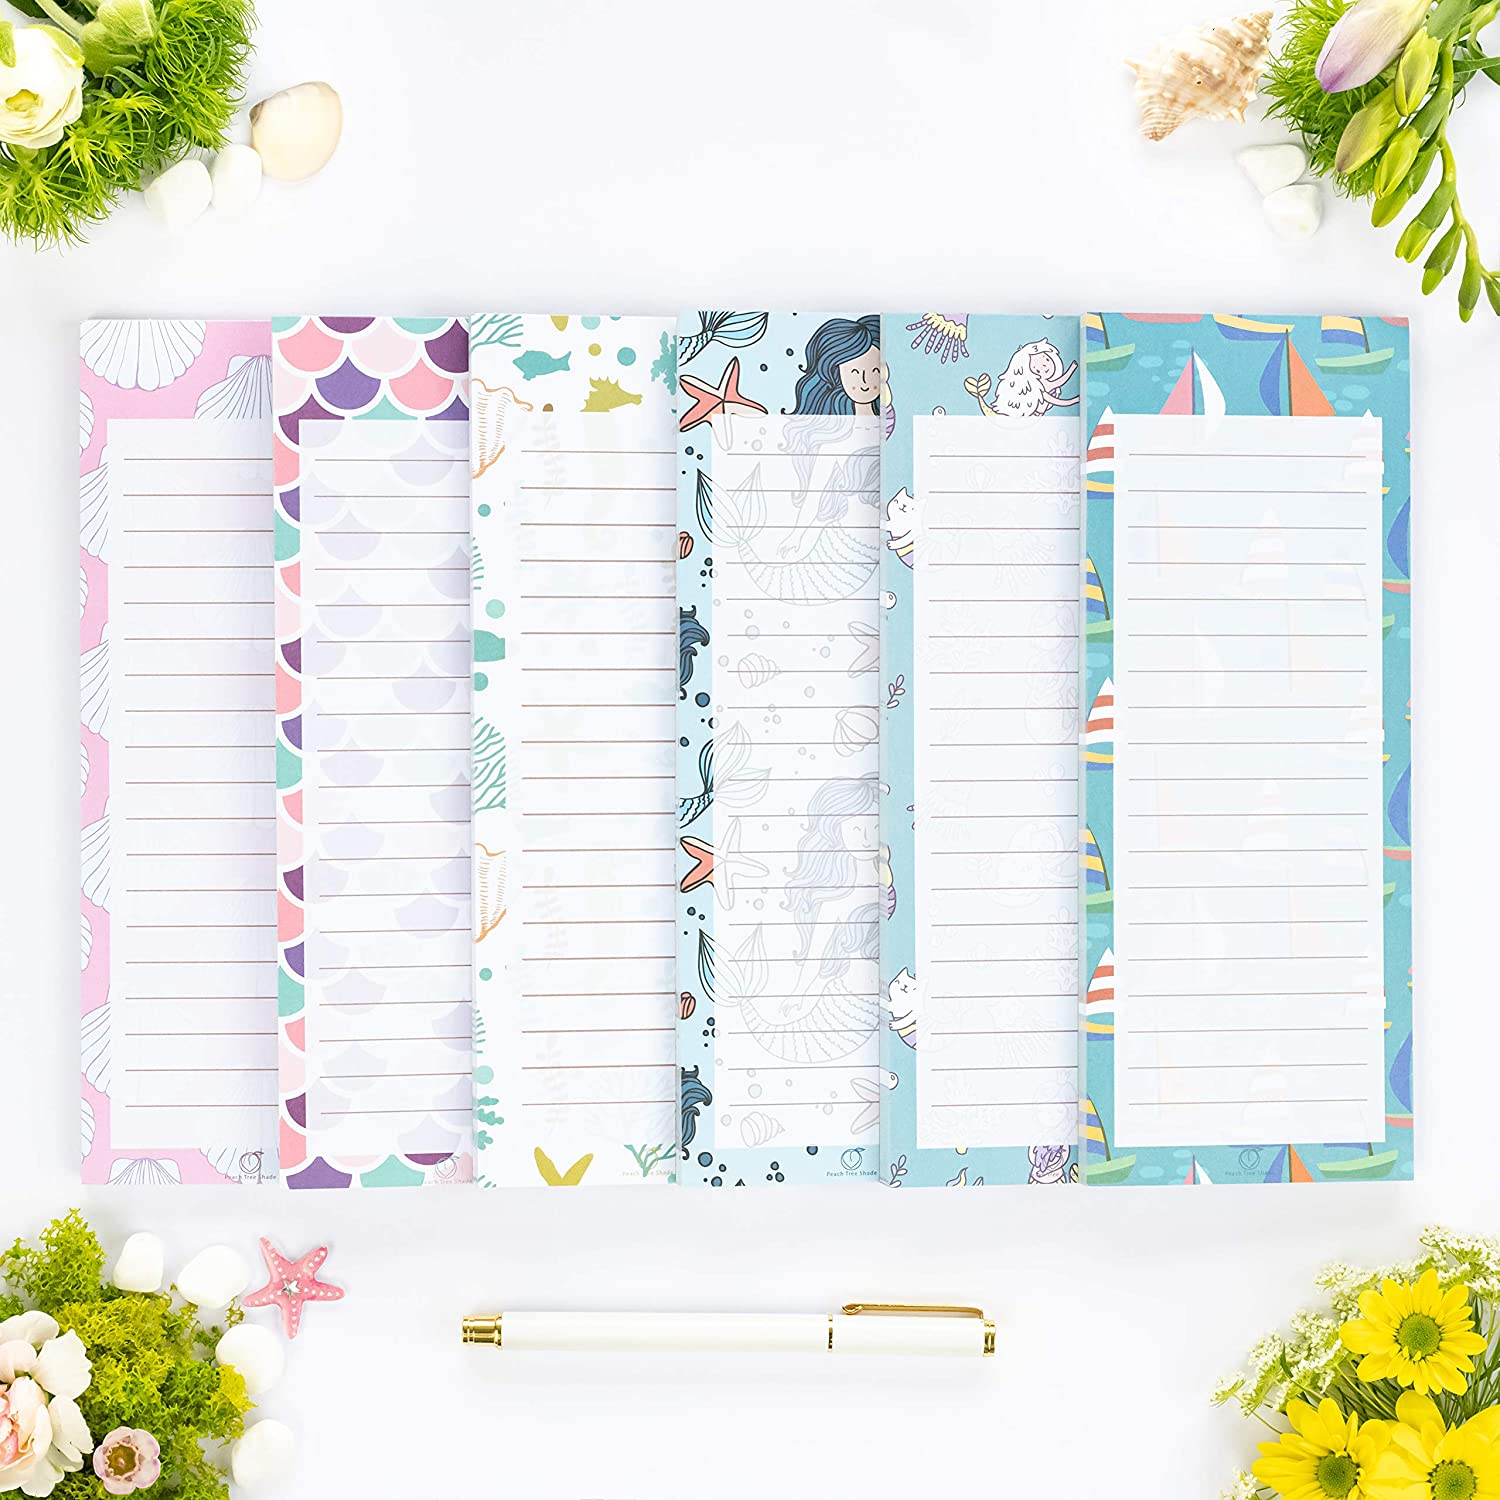 """Peach Tree Shade Magnetic Notepads, 6-Pack 60 Sheets Per Pad 3.5"""" x 9"""", for Fridge, Kitchen, Shopping, Grocery, To-Do List, Memo, Reminder, Note, Book, Stationery, (Mermaidnotes)"""